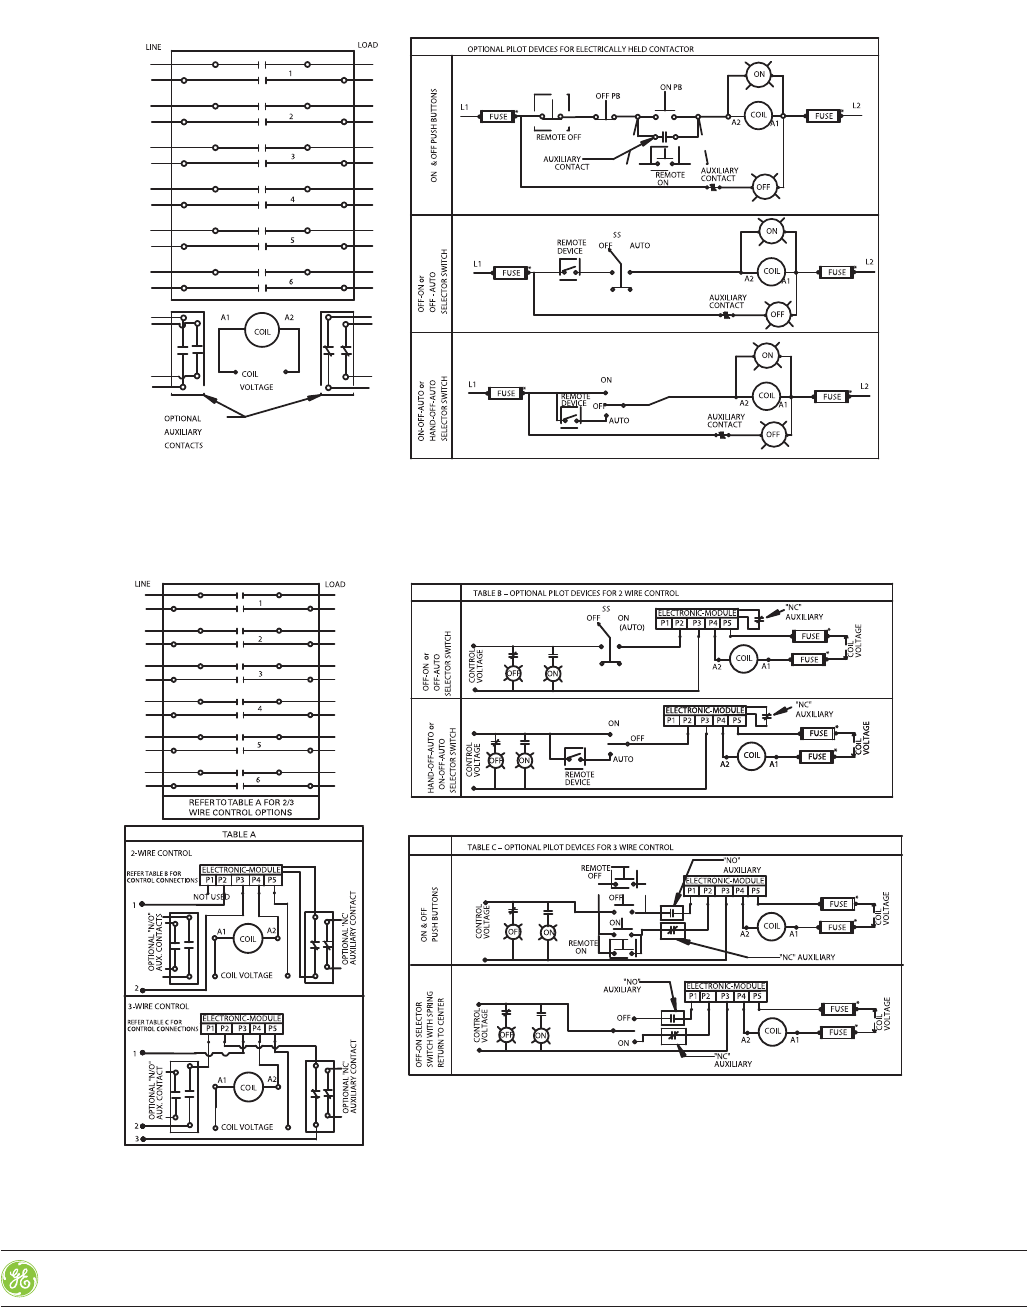 Ge Lighting Contactor Wiring Diagram from usermanual.wiki